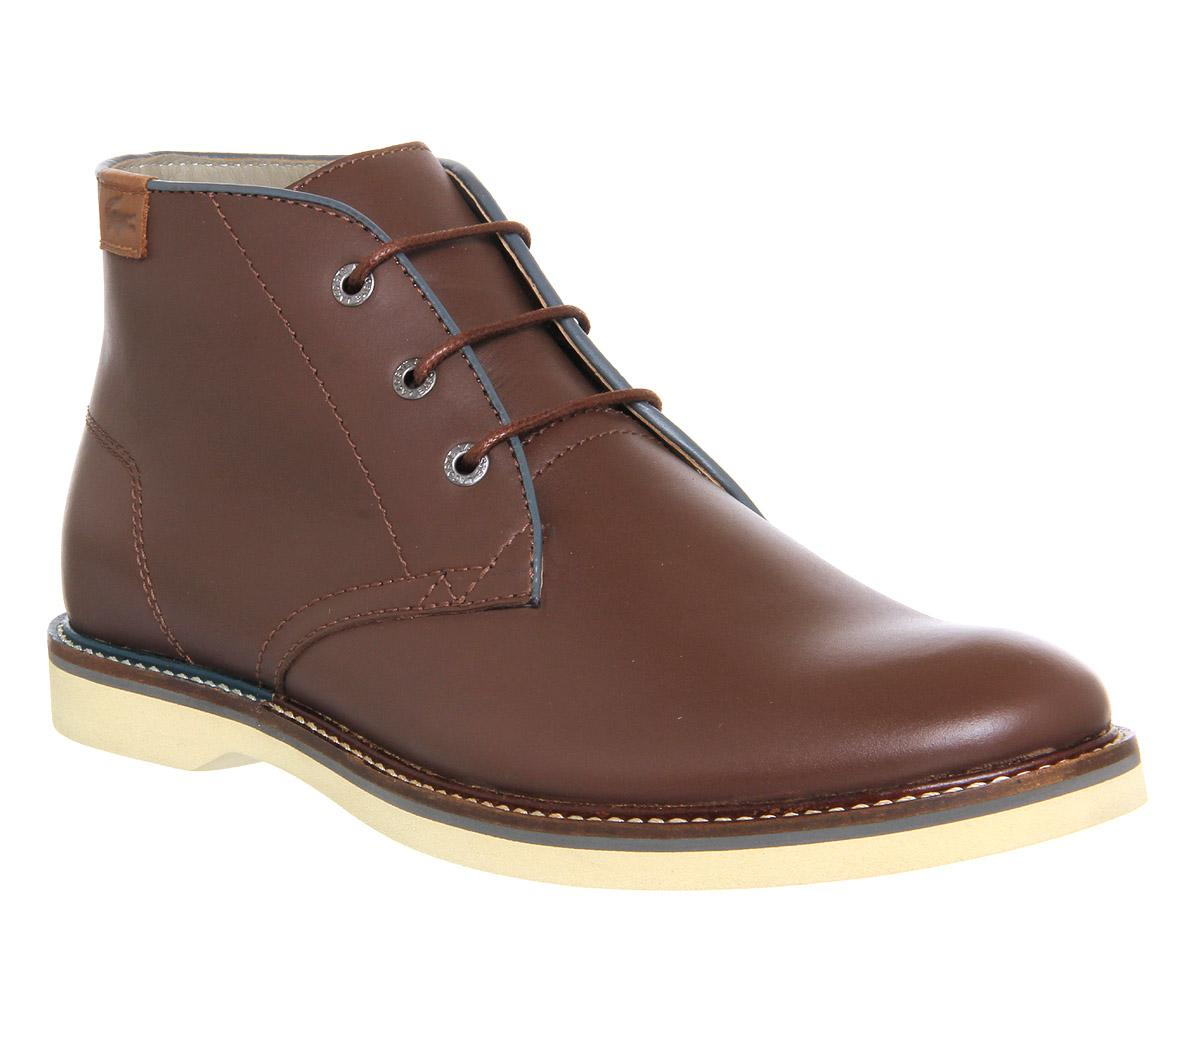 7a9ba19f648ce4 Lacoste Sherbrooke in Brown for Men - Lyst